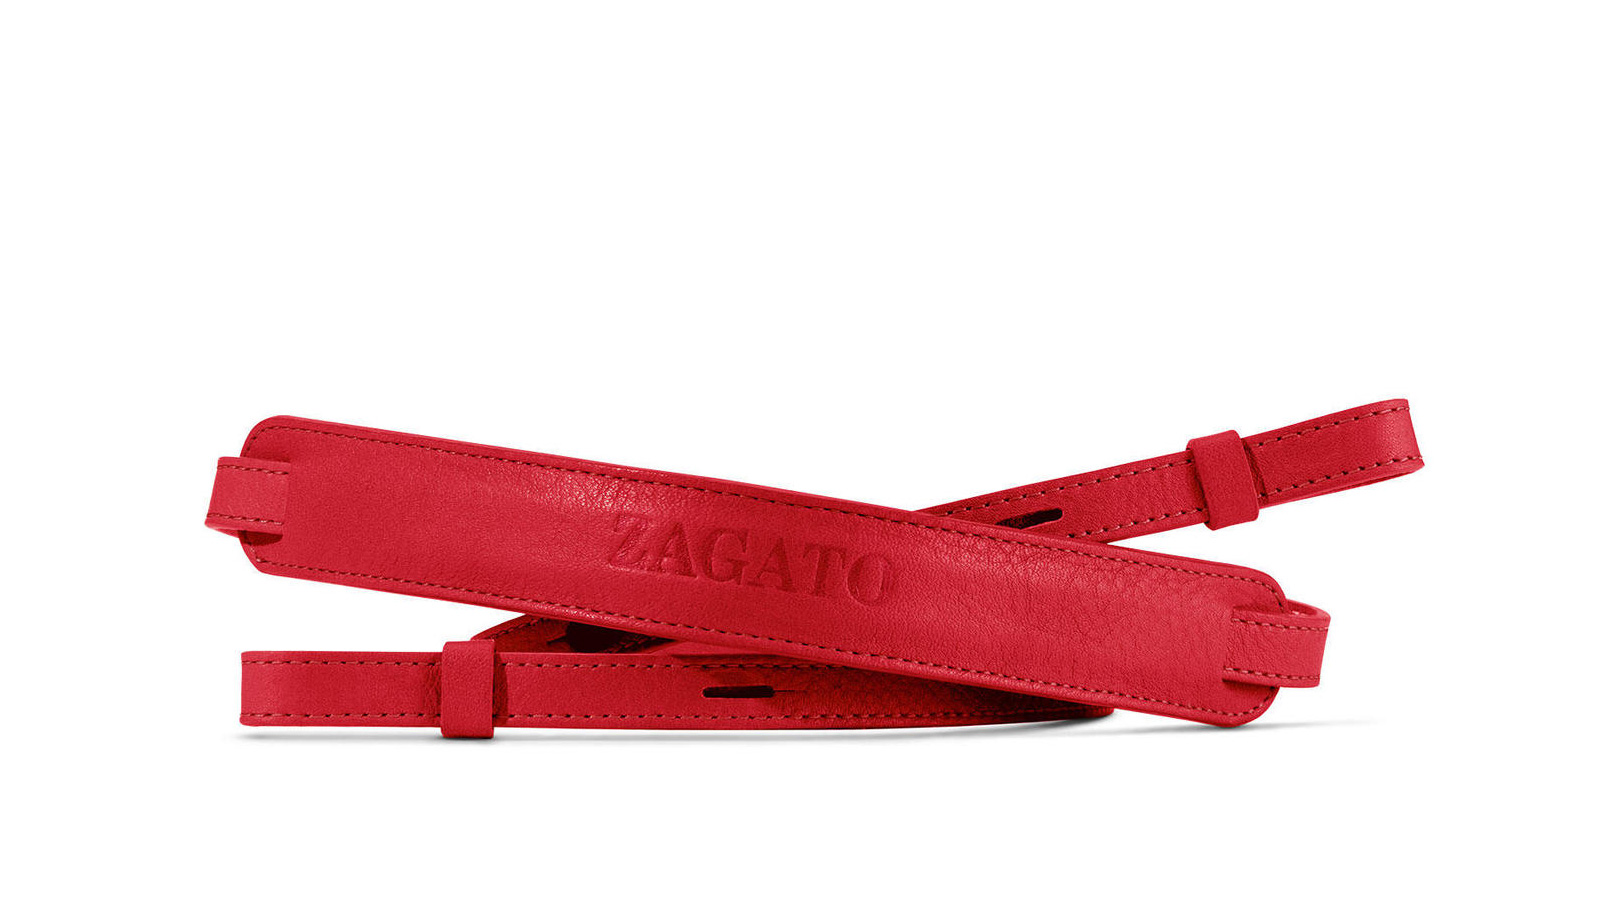 Red full-grain leather carry strap with the Zagato logo embossed on